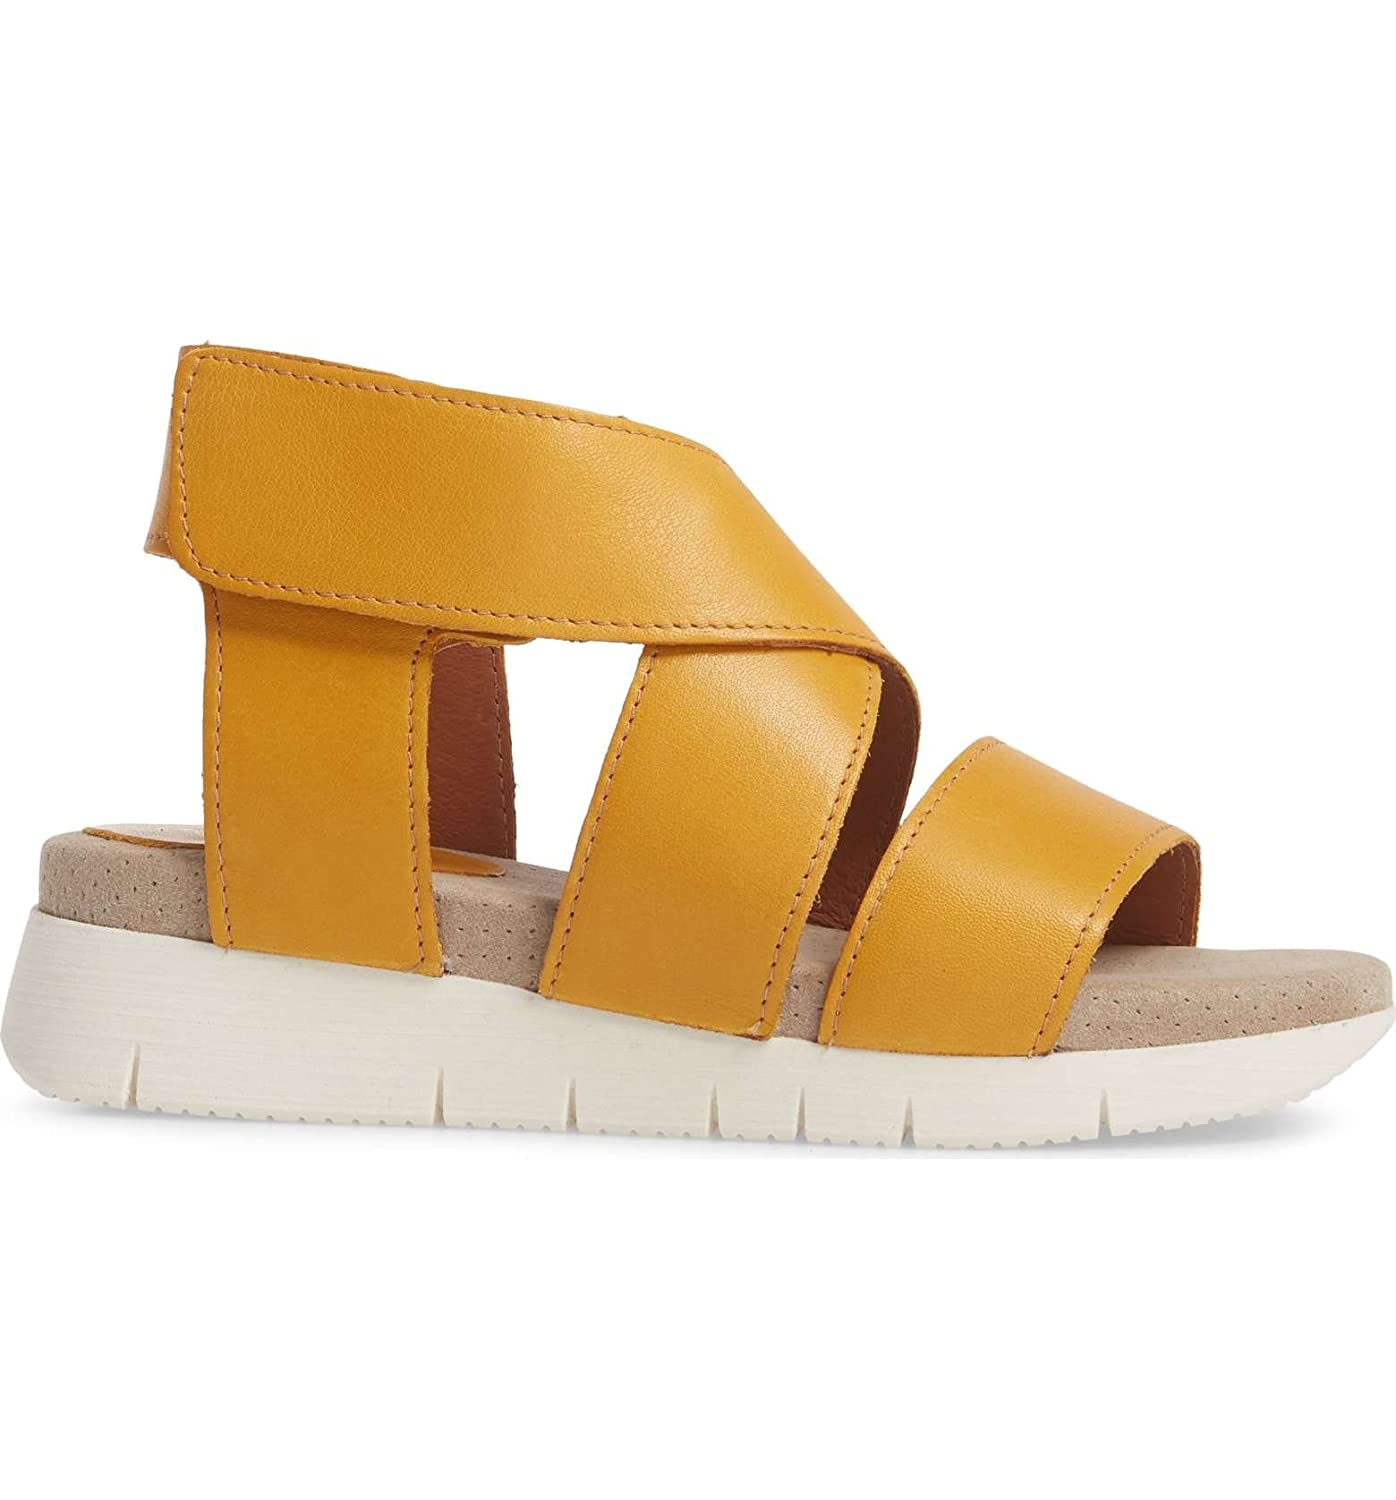 Bos. & Co. Women's Piper Sandal B075GHJH76 37 M EU (6-6.5 US)|Yellow Sauvage Leather